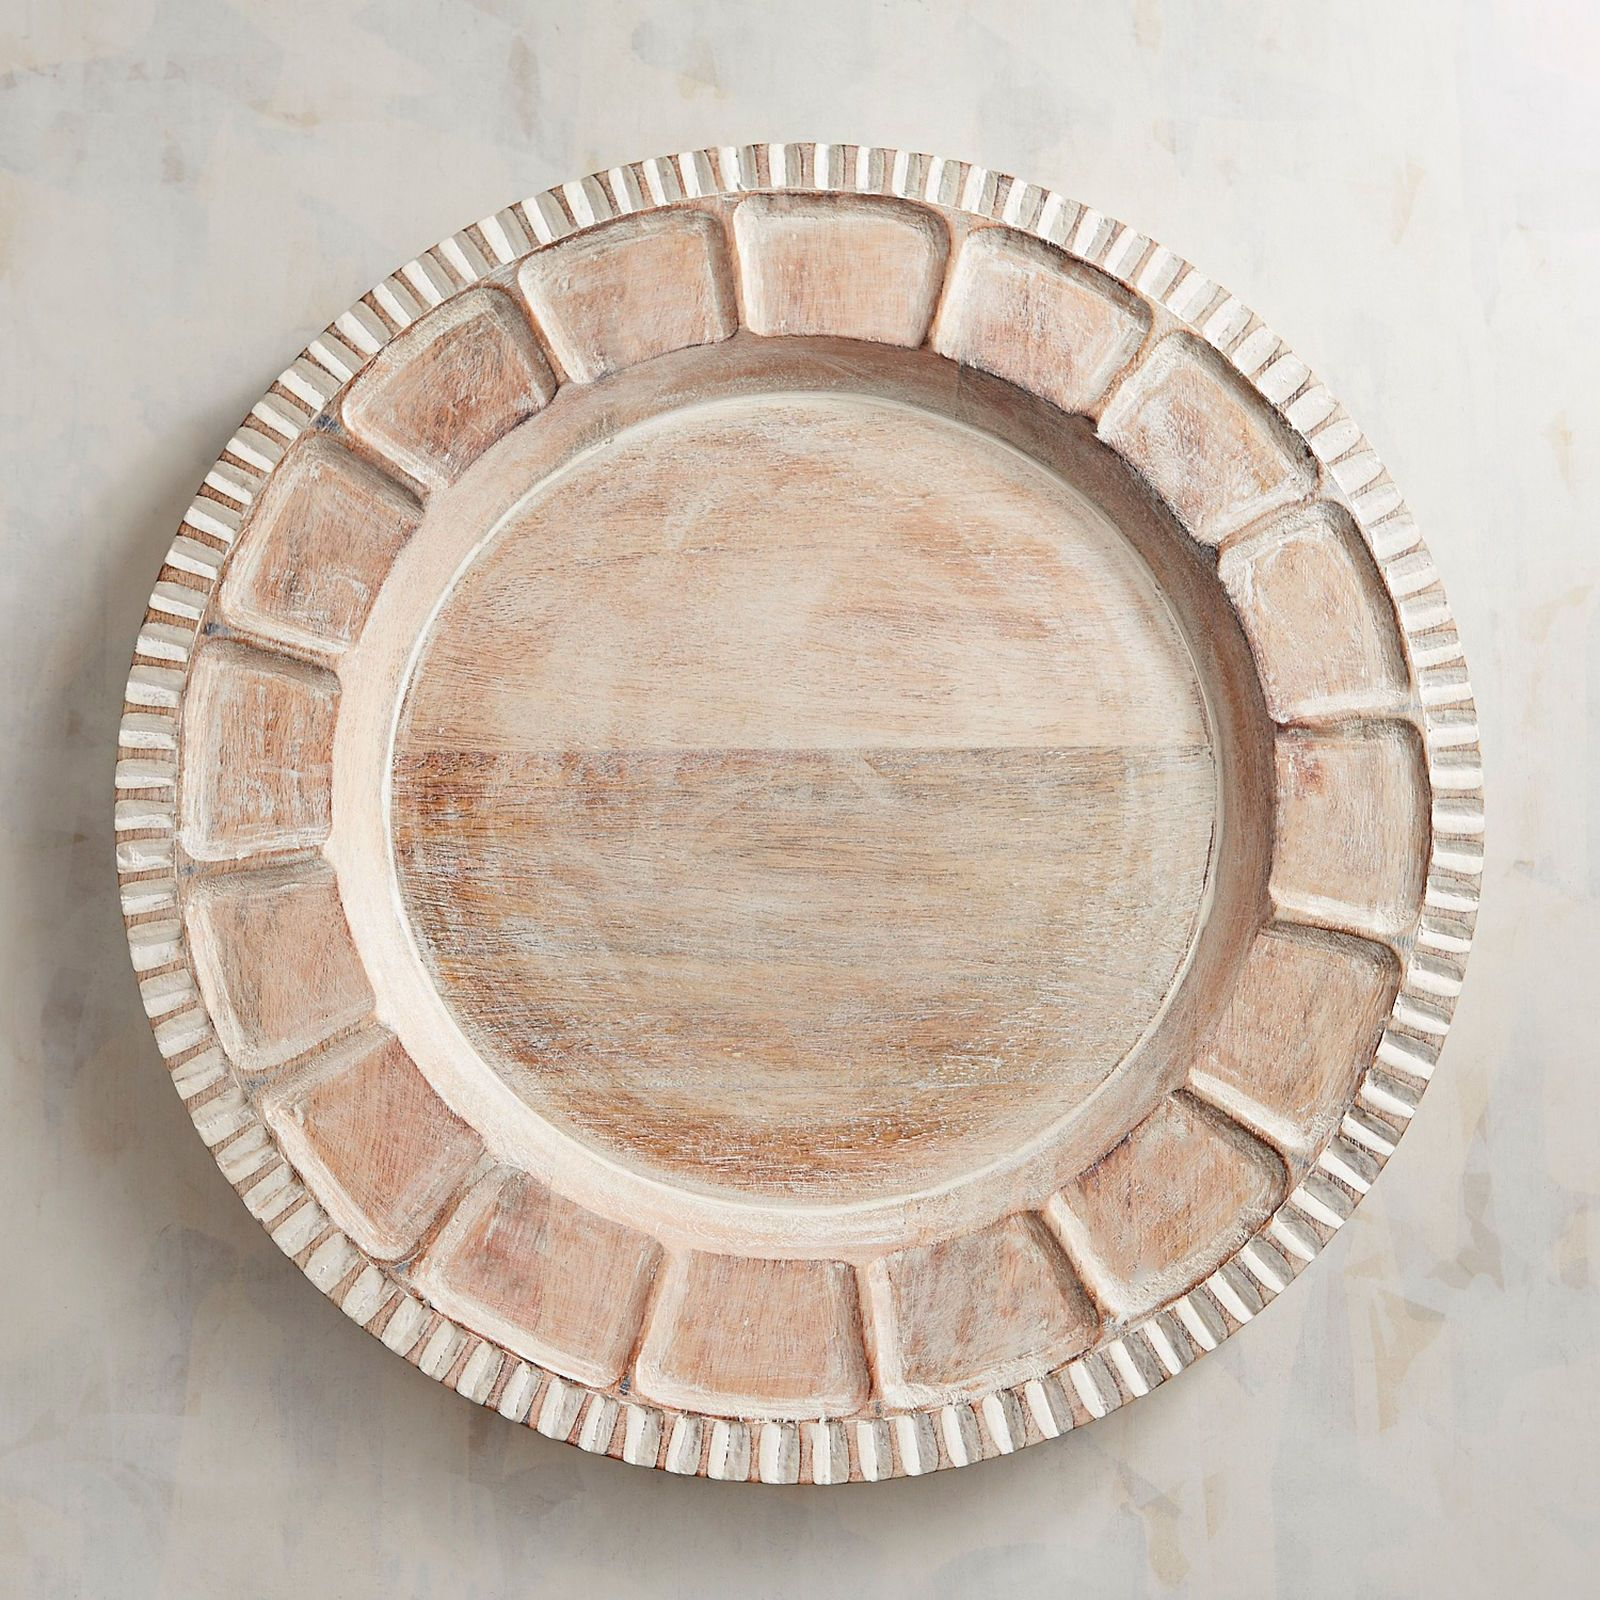 Wooden Carved Scallop Charger Plate Pier 1 Imports Wooden Charger Plates Charger Plates Plates